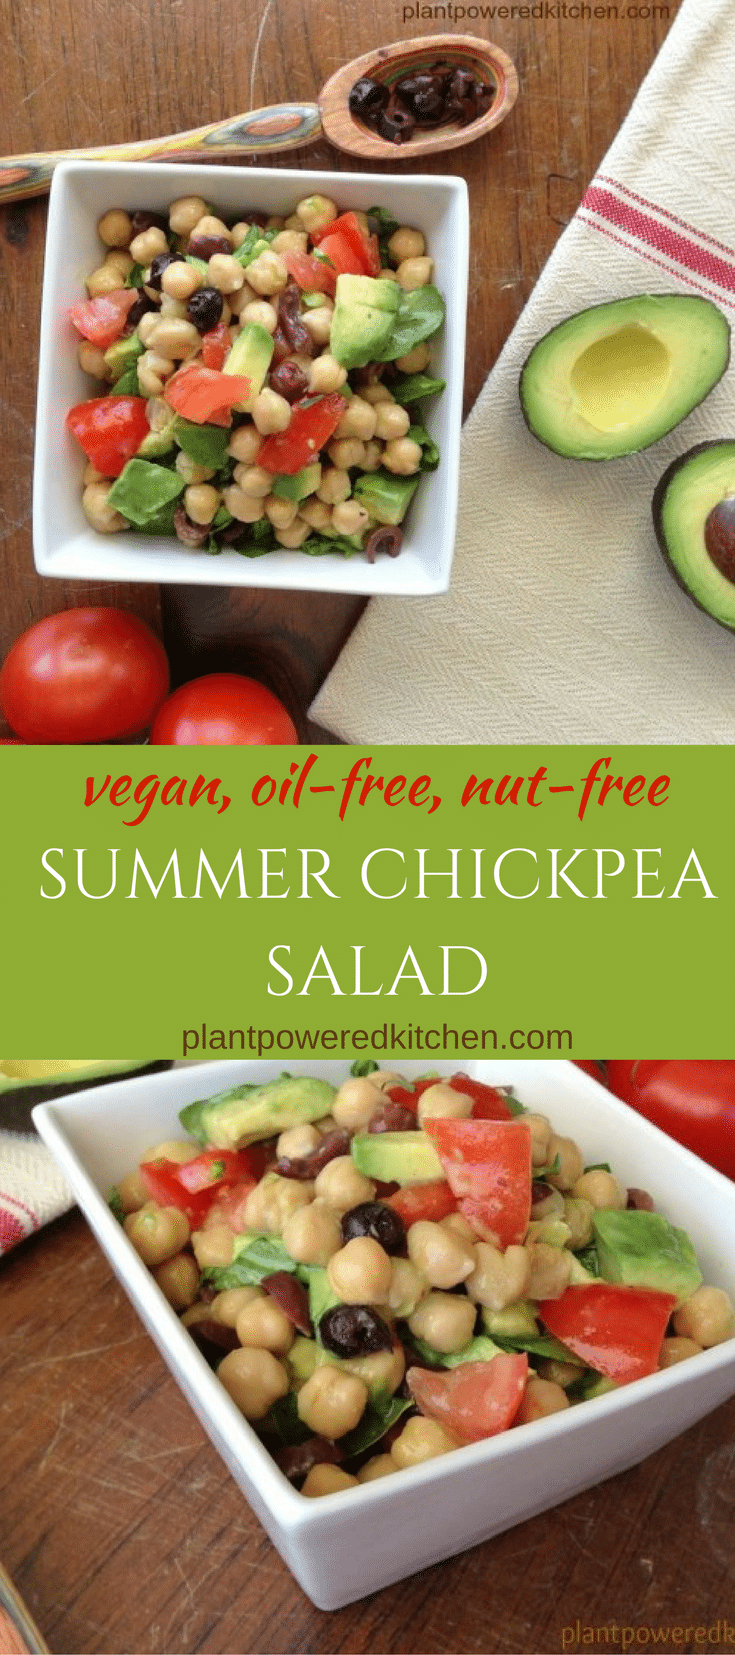 SUMMER CHICKPEA SALAD! Delicious, easy, breezy! Vegan, nut-free, gluten-free, and oil-free. By Dreena Burton, plantpoweredkitchen.com